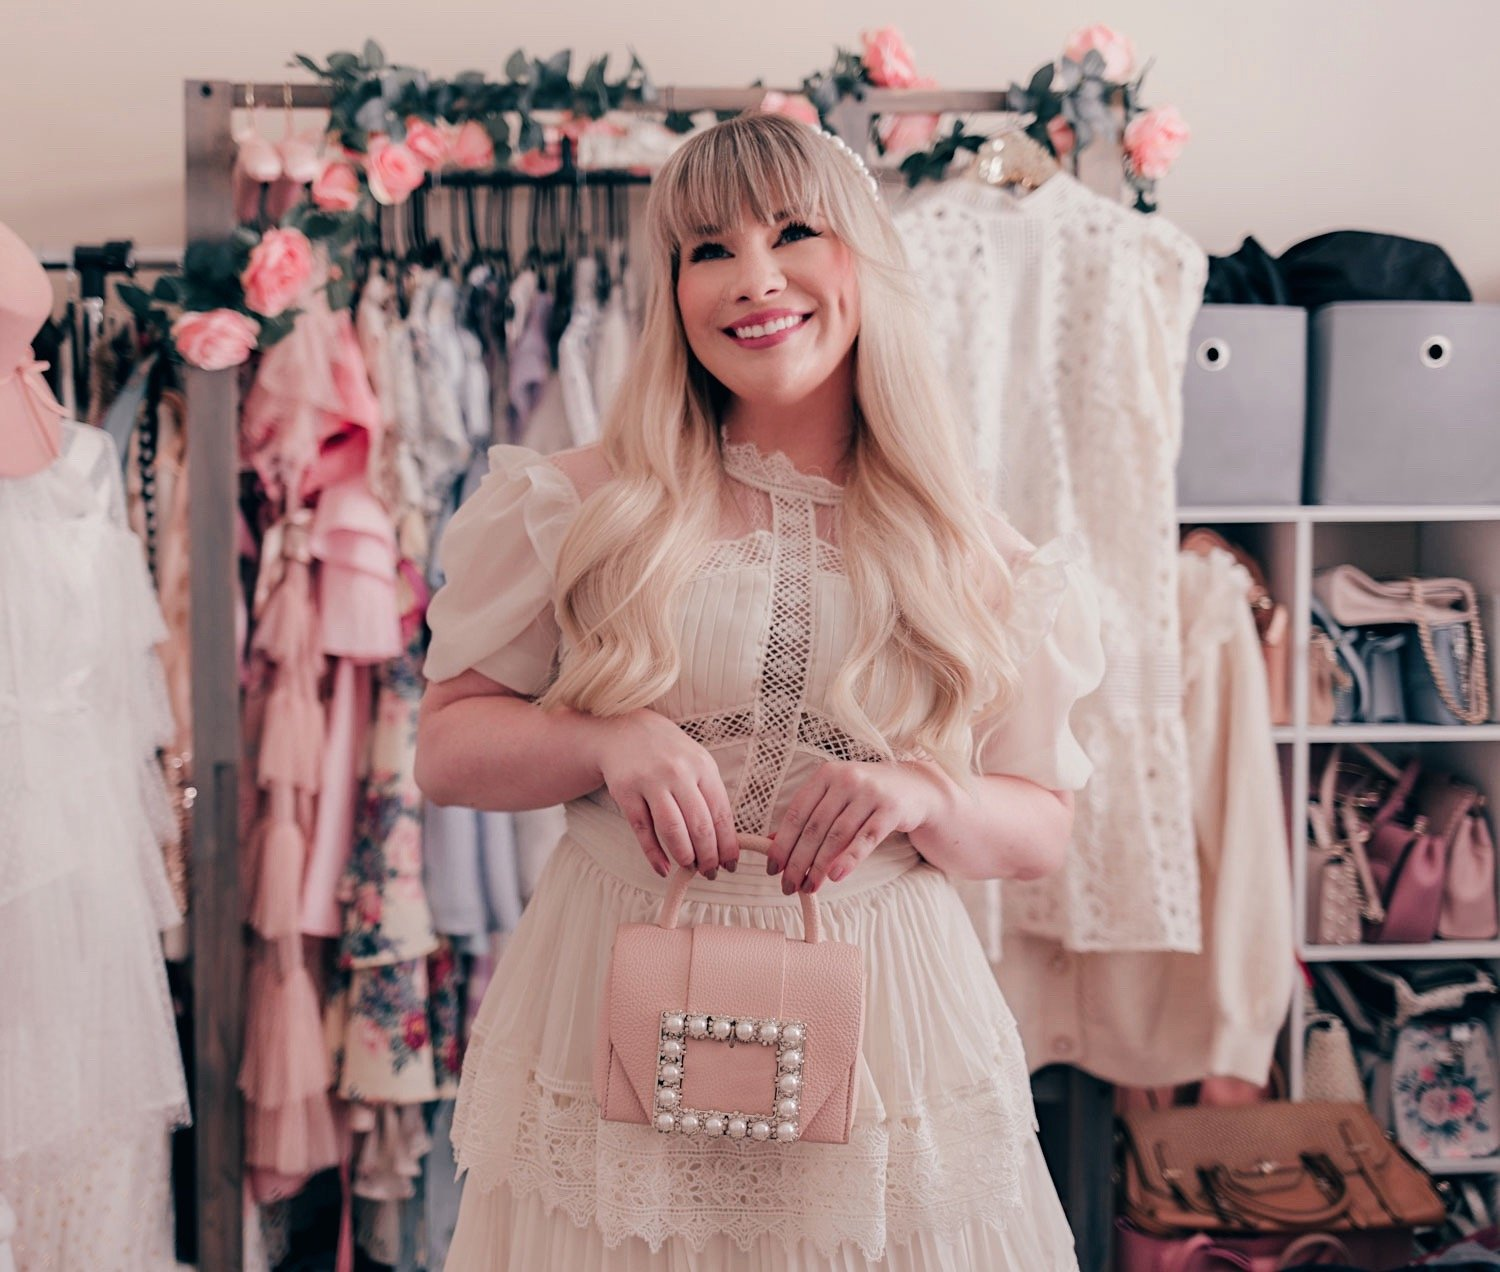 Fashion Blogger Elizabeth Hugen of Lizzie in Lace shares her feminine fashion haul including this gorgeous cream ruffled doll dress!